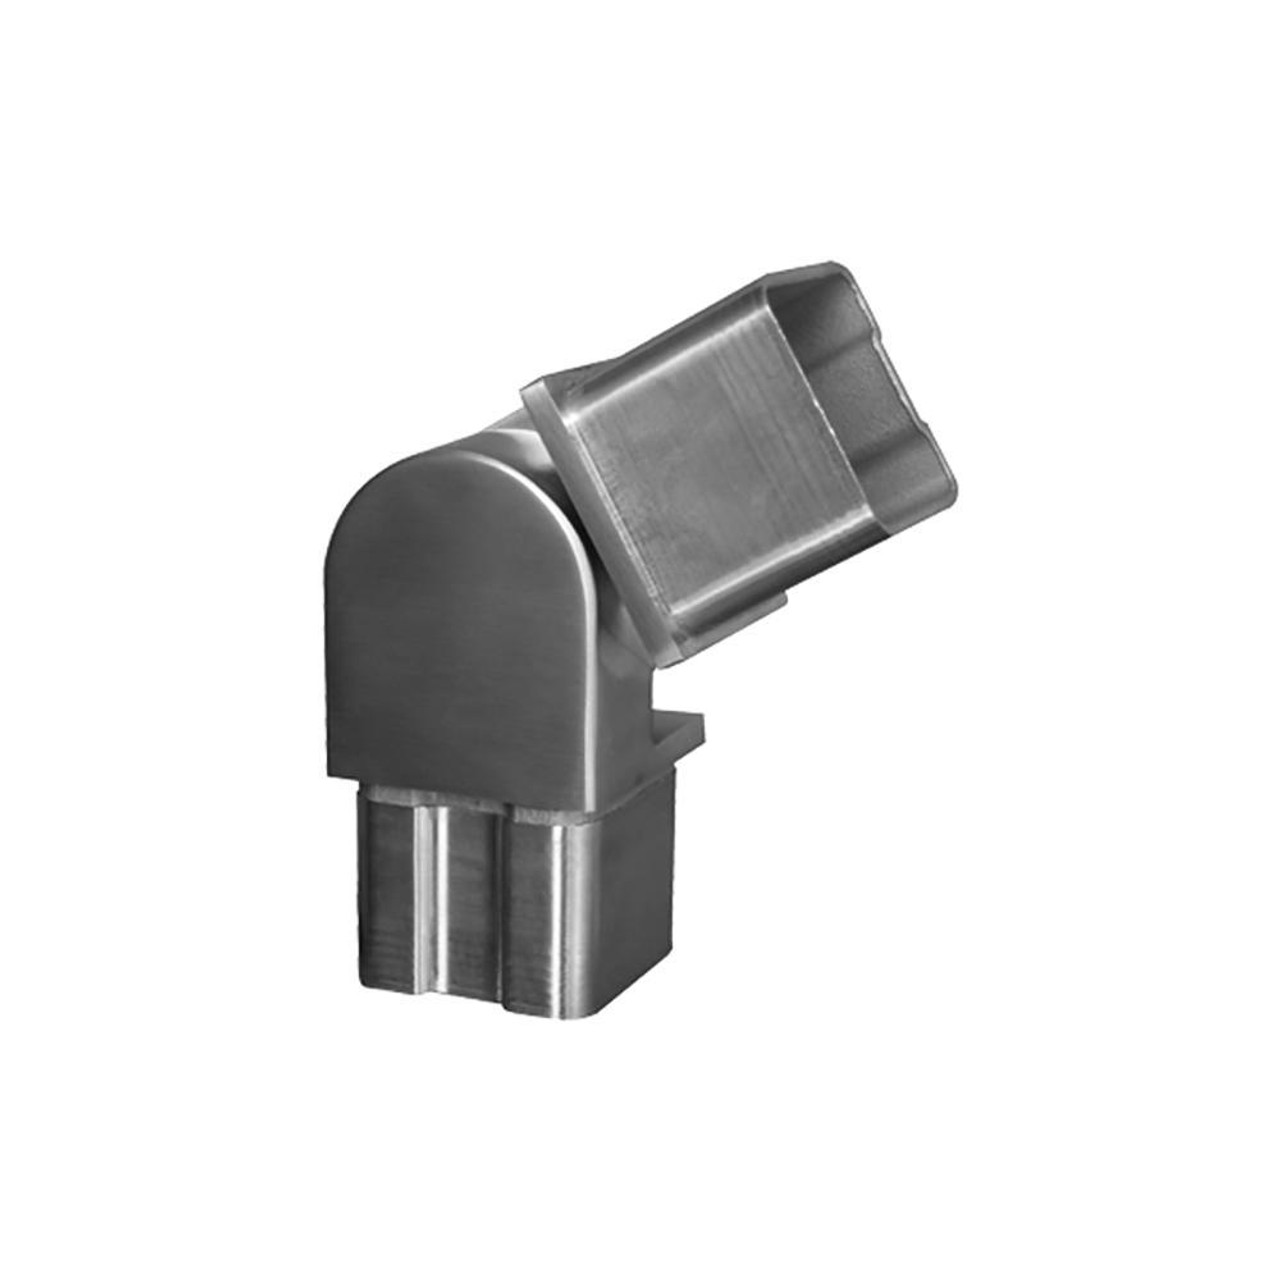 Adjustable Fitting for Square Rail – 40 x 40 x 2 mm (AX20.008.111.A.SP)